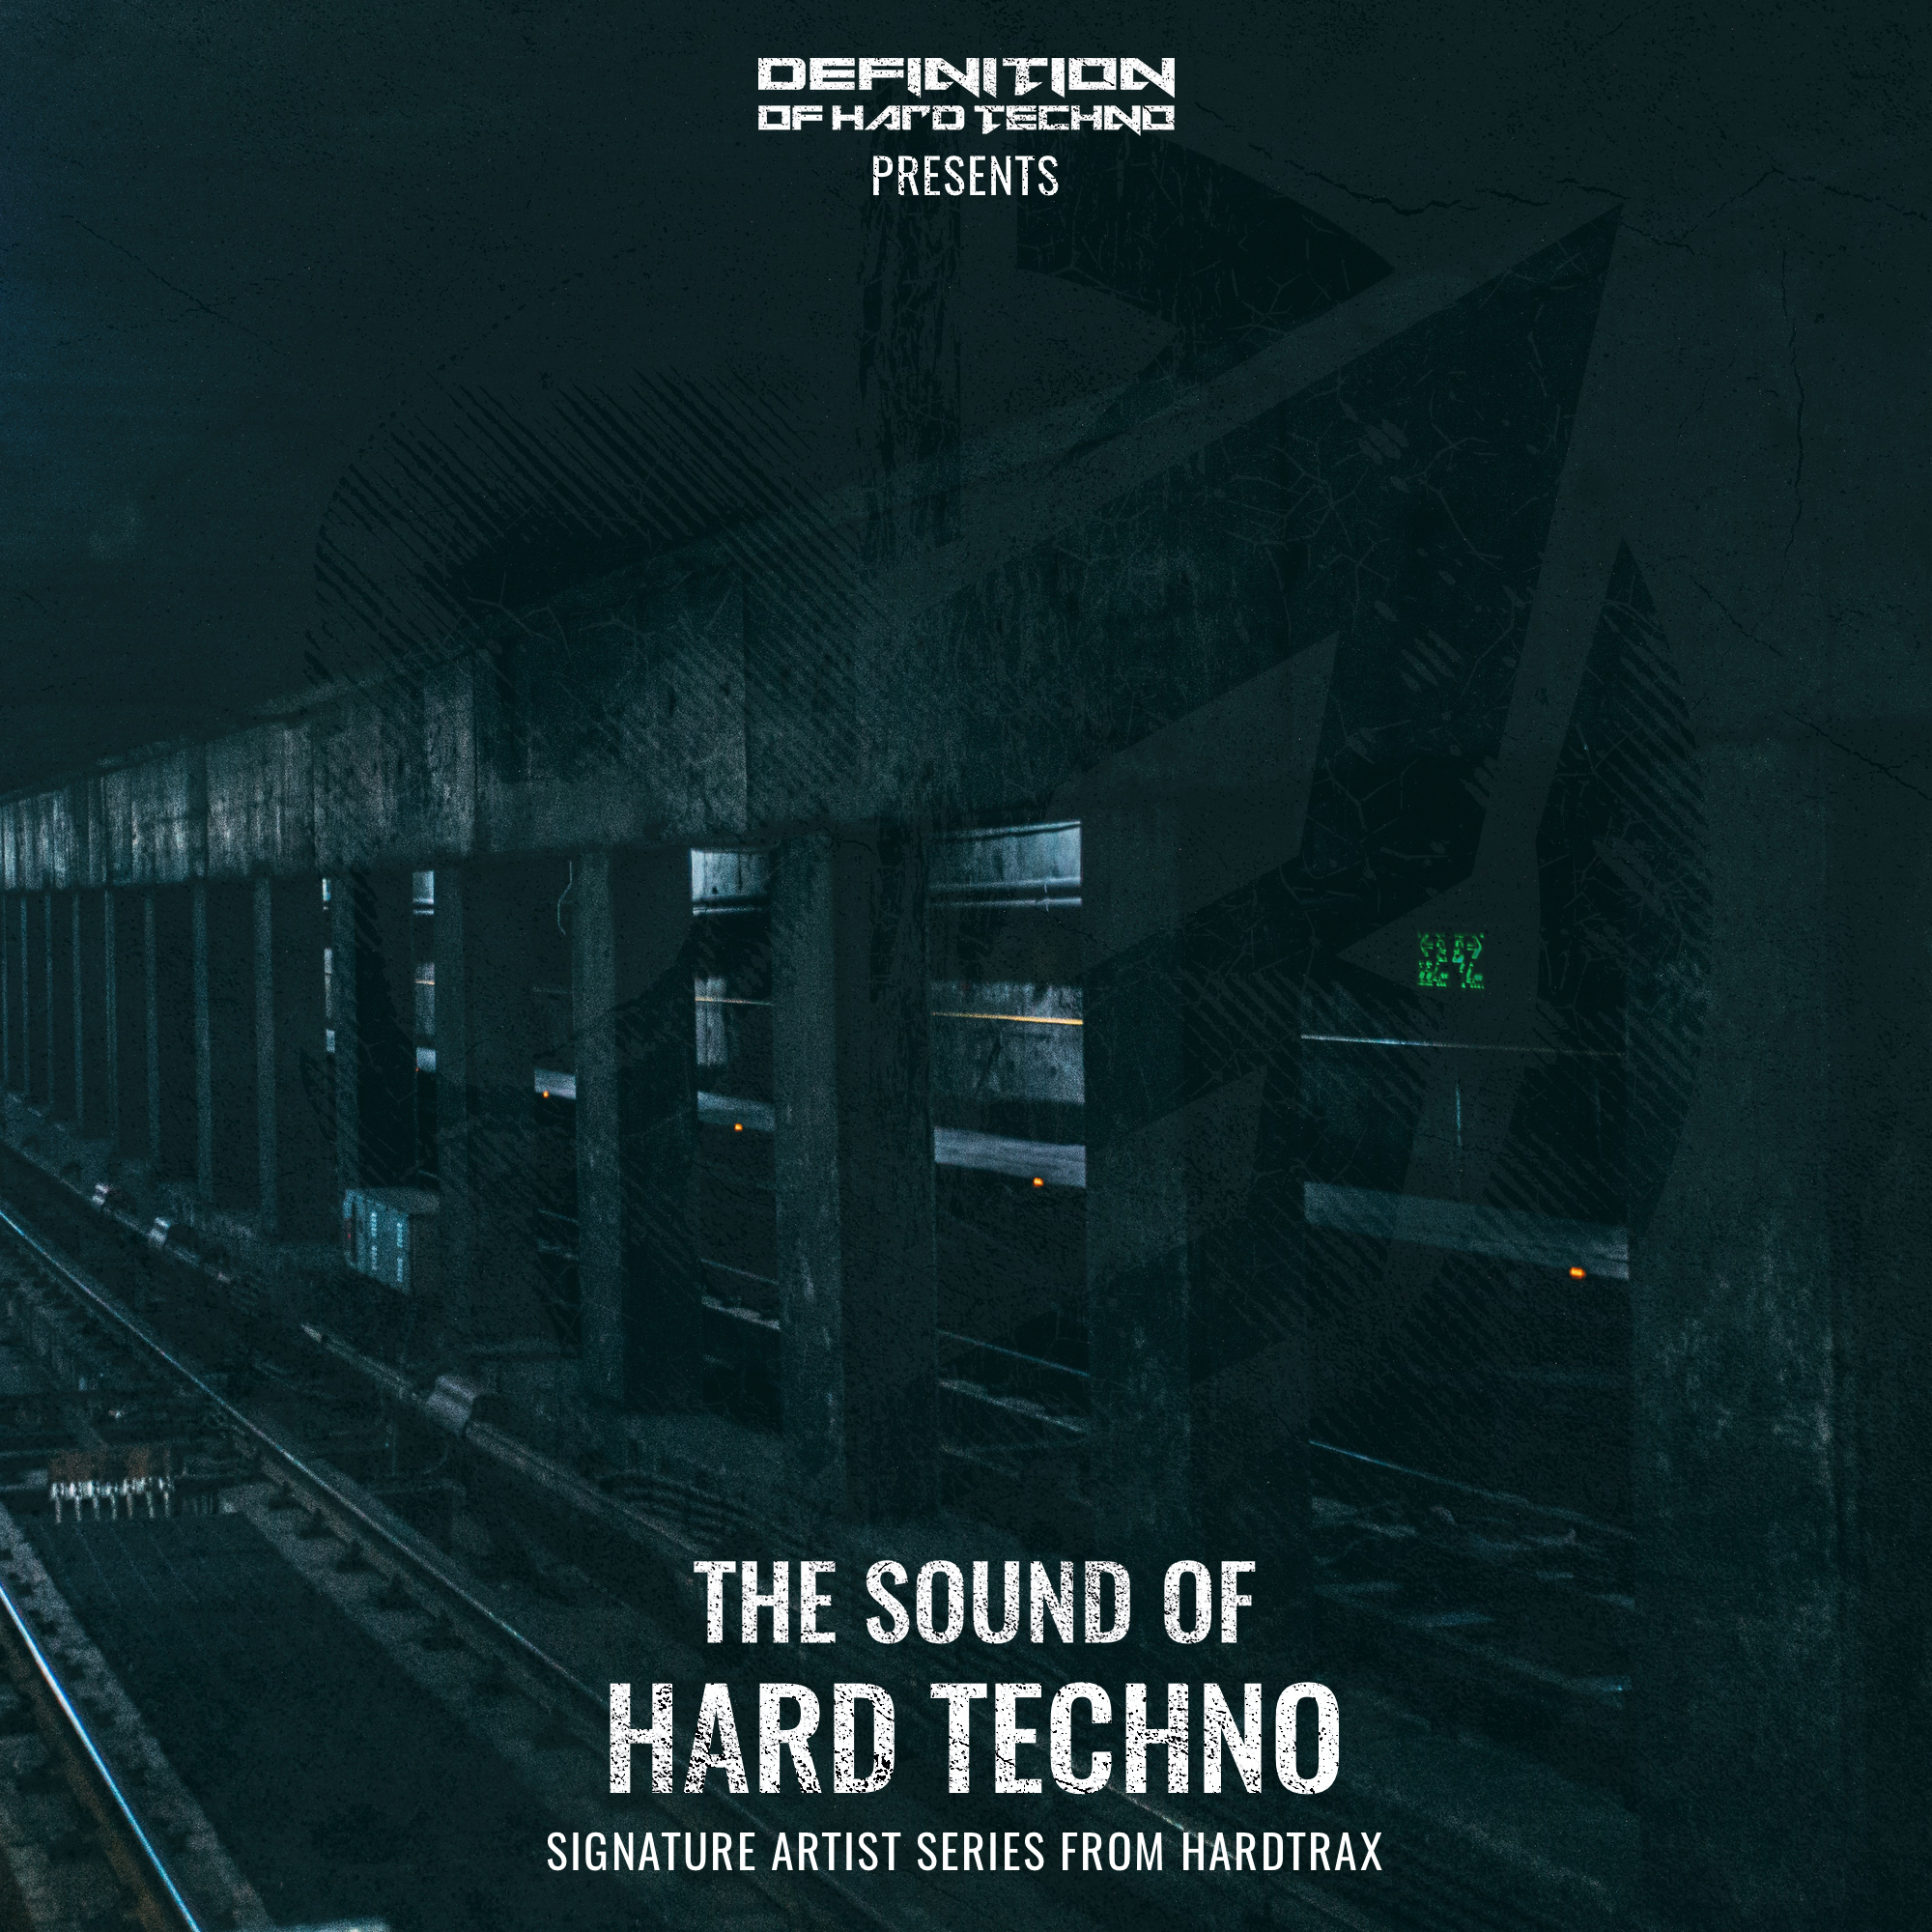 The Sound of Hard Techno Vol. 1 by HardtraX